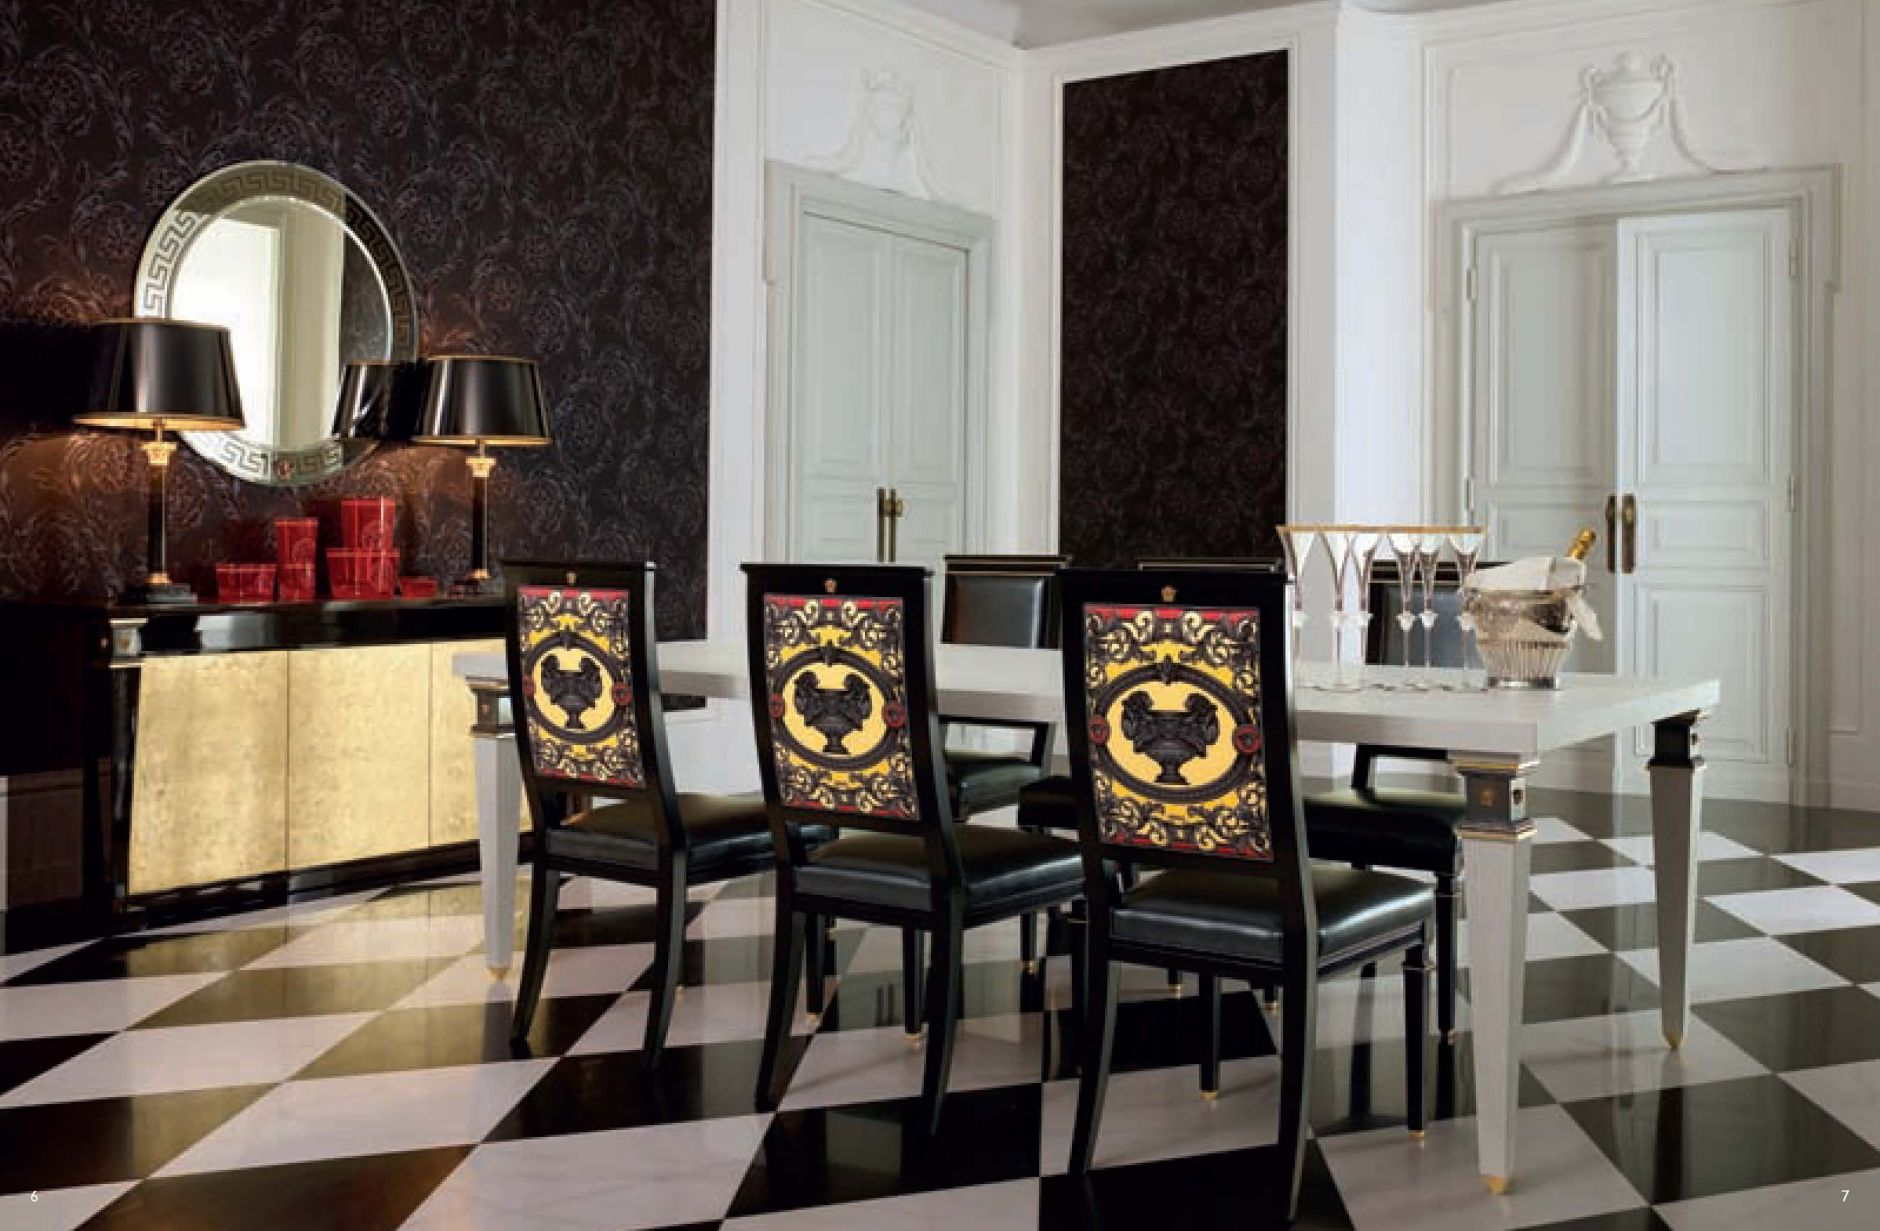 Versace Furniture Dining Room Versace Obelisco Seriesfurniture From Italy